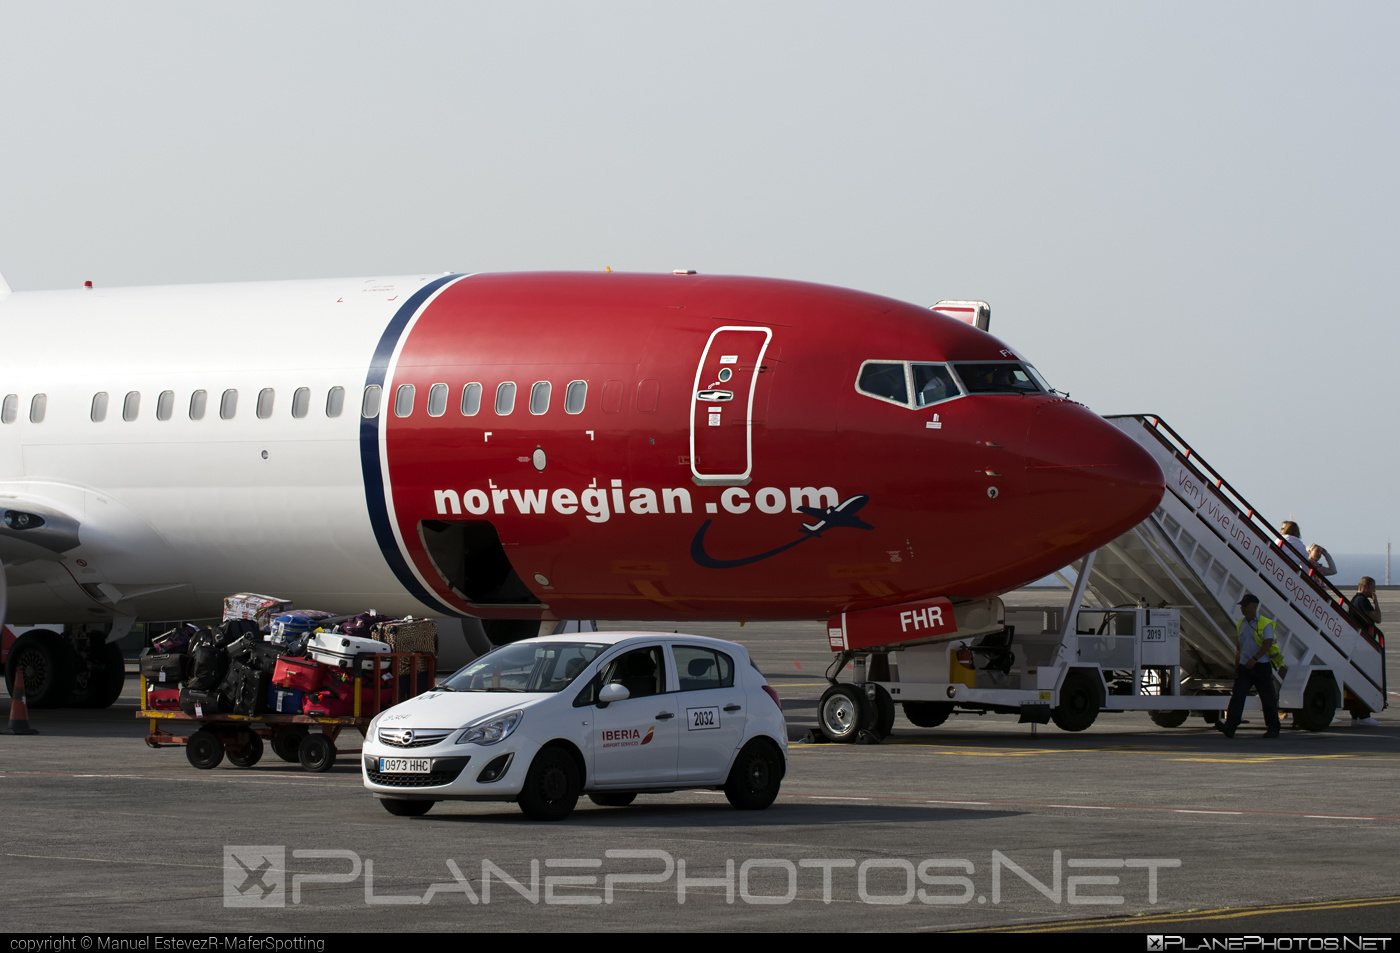 Boeing 737-800 - EI-FHR operated by Norwegian Air International #b737 #b737nextgen #b737ng #boeing #boeing737 #norwegian #norwegianair #norwegianairinternational